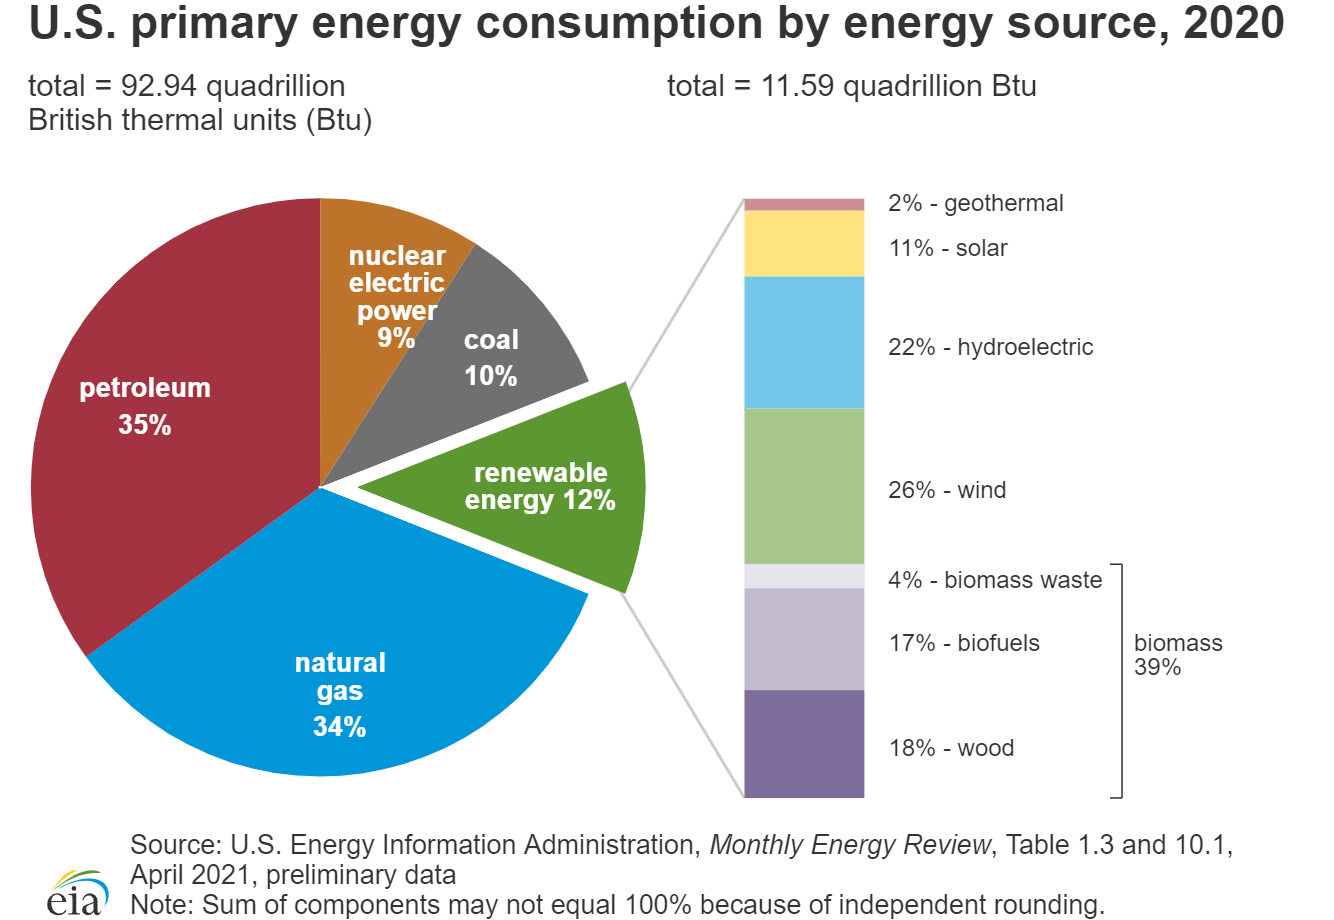 pie chart of united states primary energy consumption by energy source, 2020